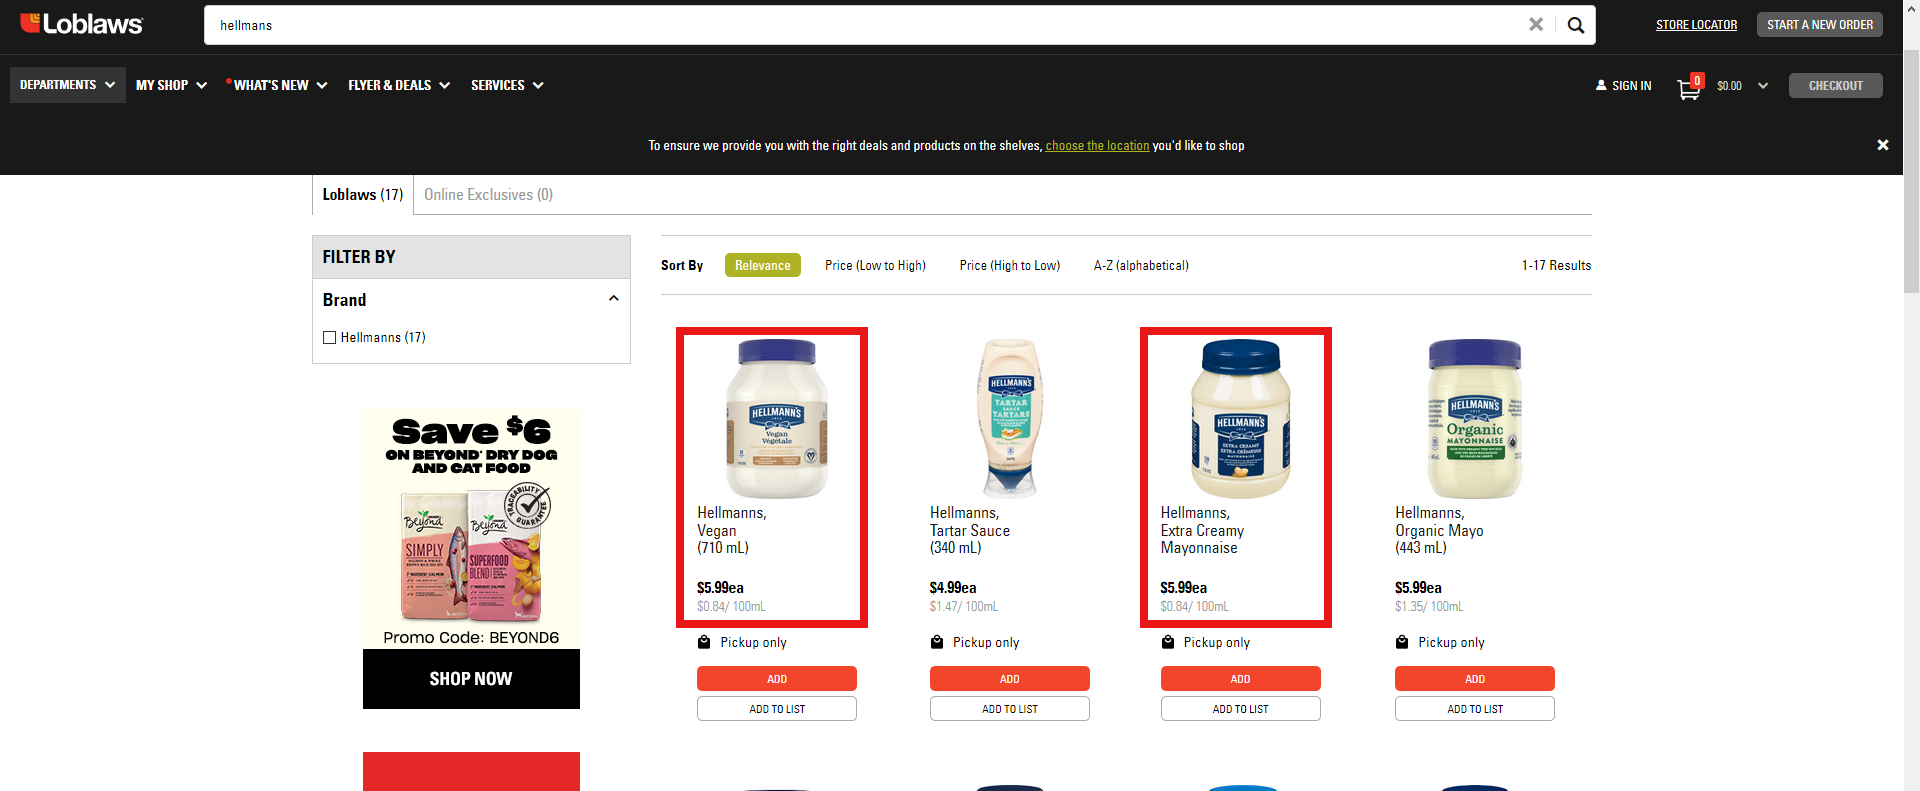 AterImber.com - The Veg Life - Product Reviews - Hellmans Carefully Crafted Dressing and Sandwich Spread - Price Comparison on Loblaws.ca - vegan food, vegan food reviewer